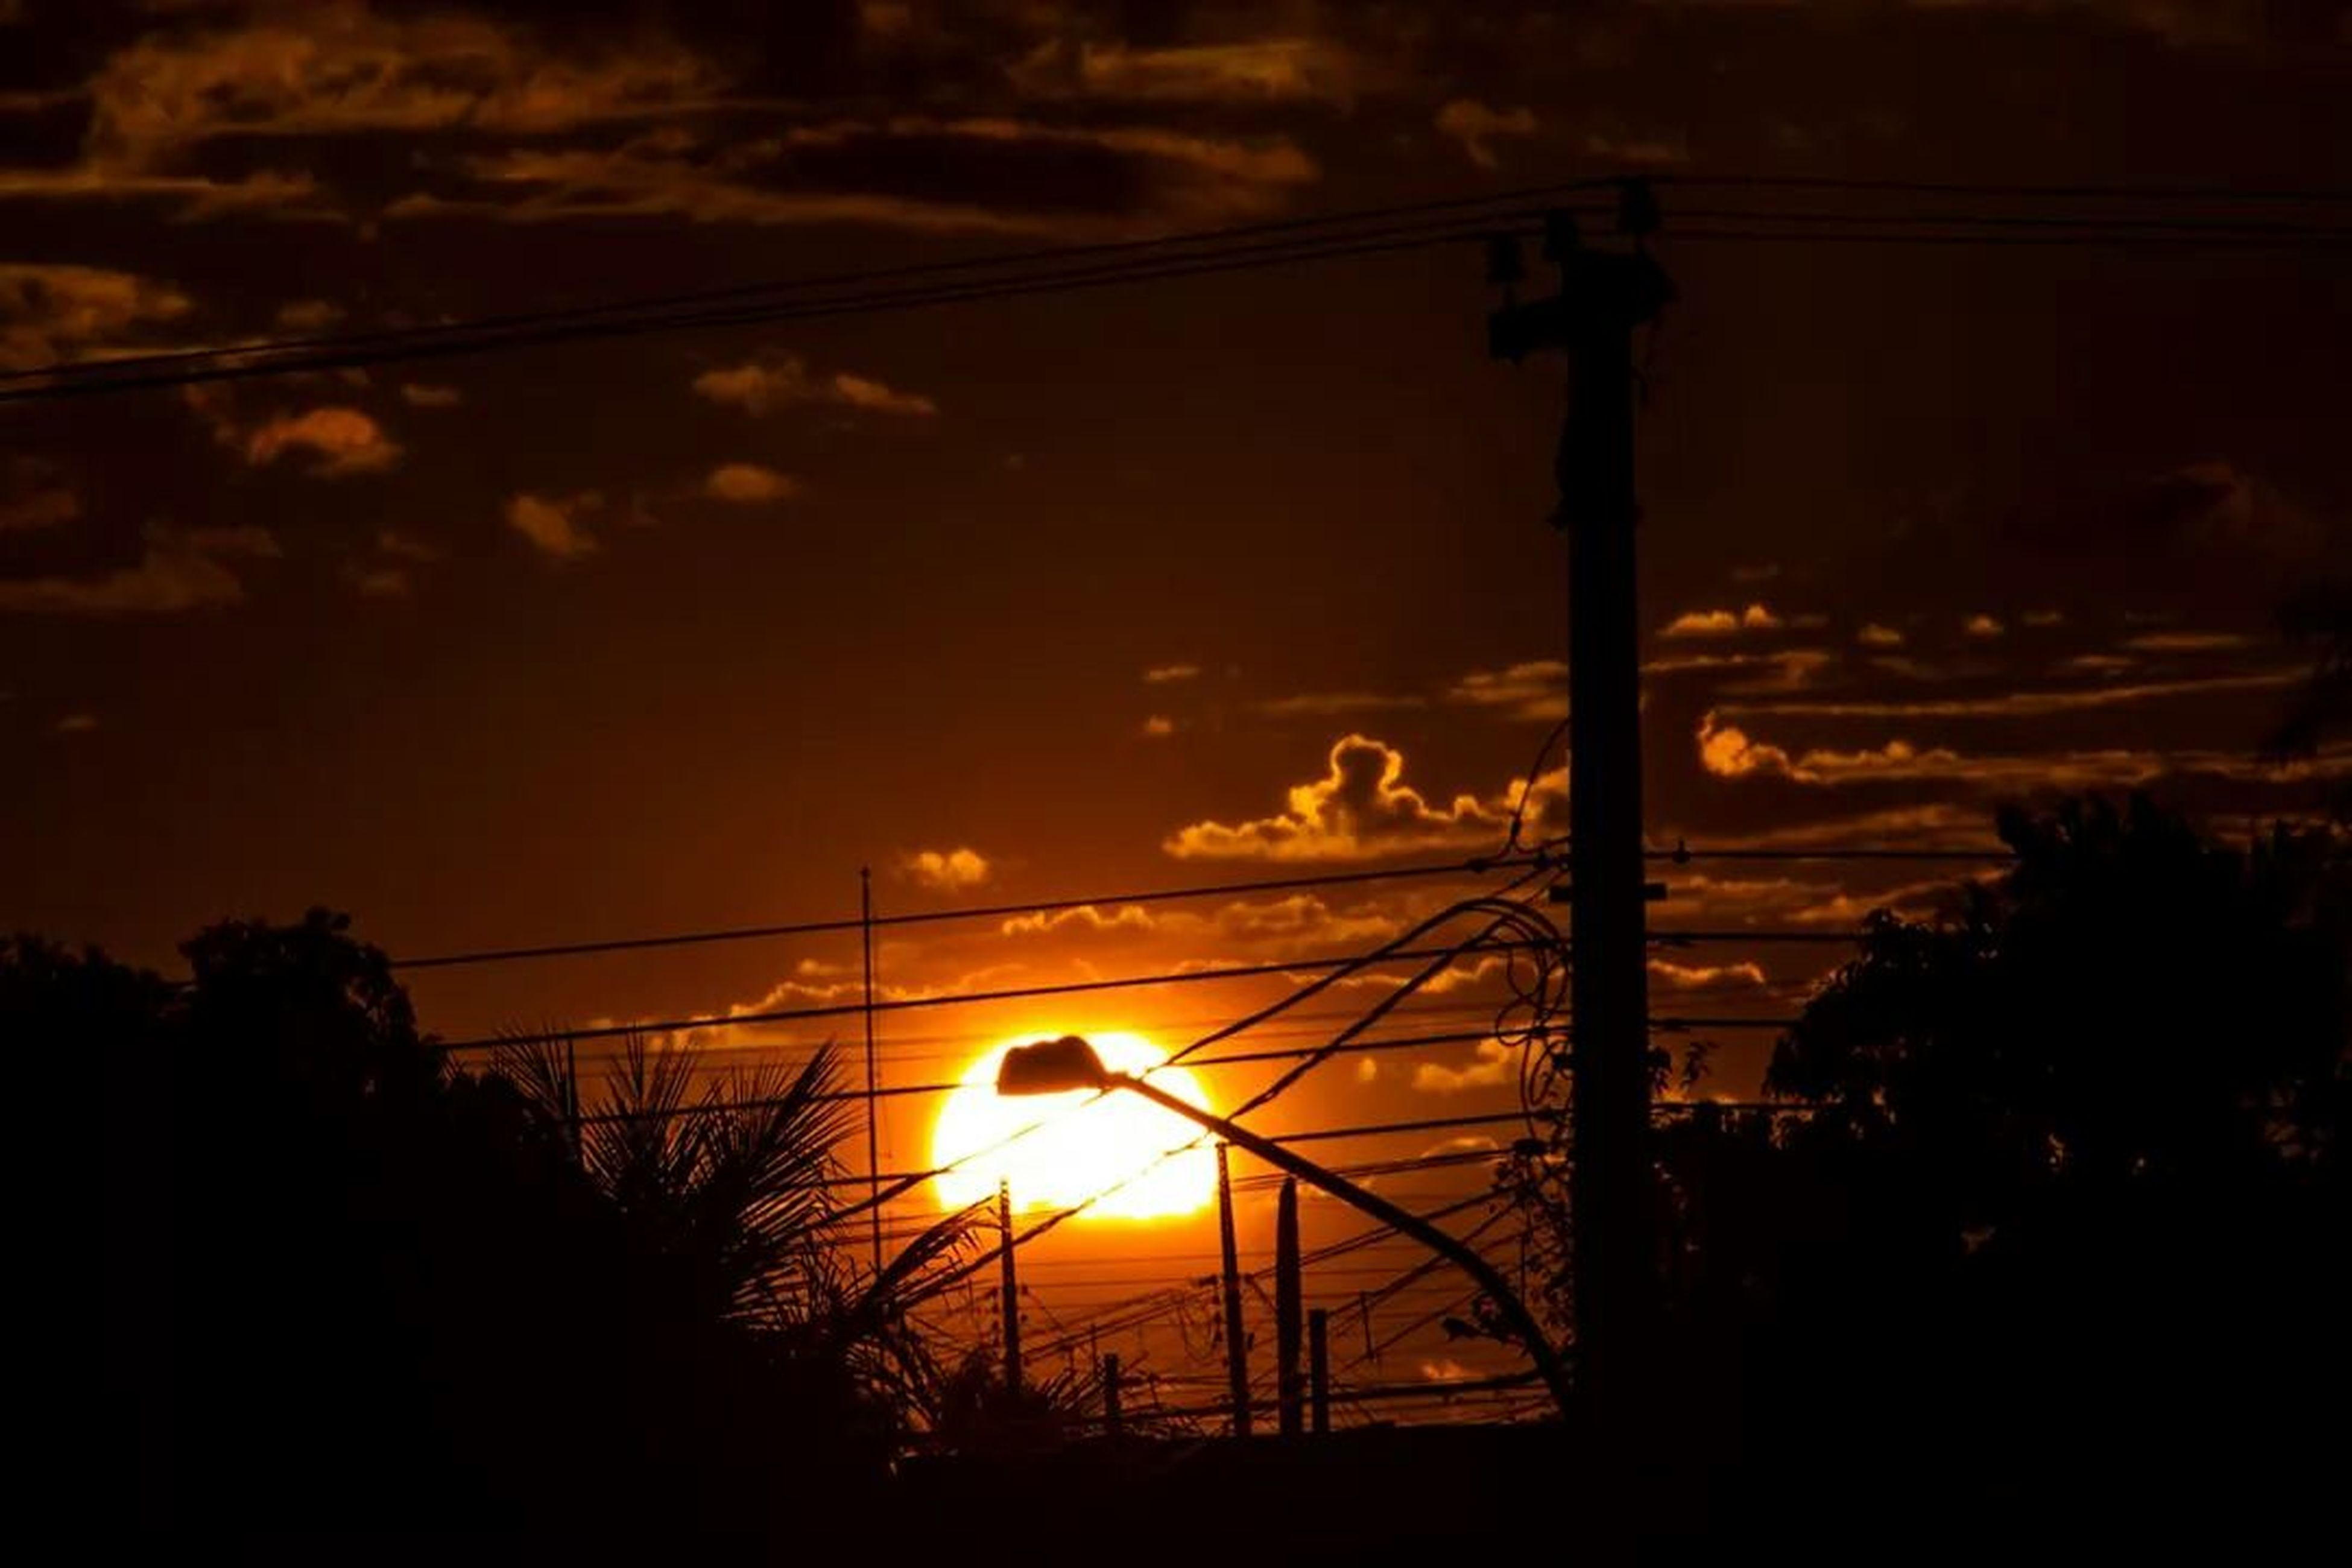 sunset, silhouette, sky, sun, orange color, electricity, power line, tree, street light, low angle view, electricity pylon, dark, cloud - sky, nature, power supply, lighting equipment, sunlight, no people, outdoors, built structure